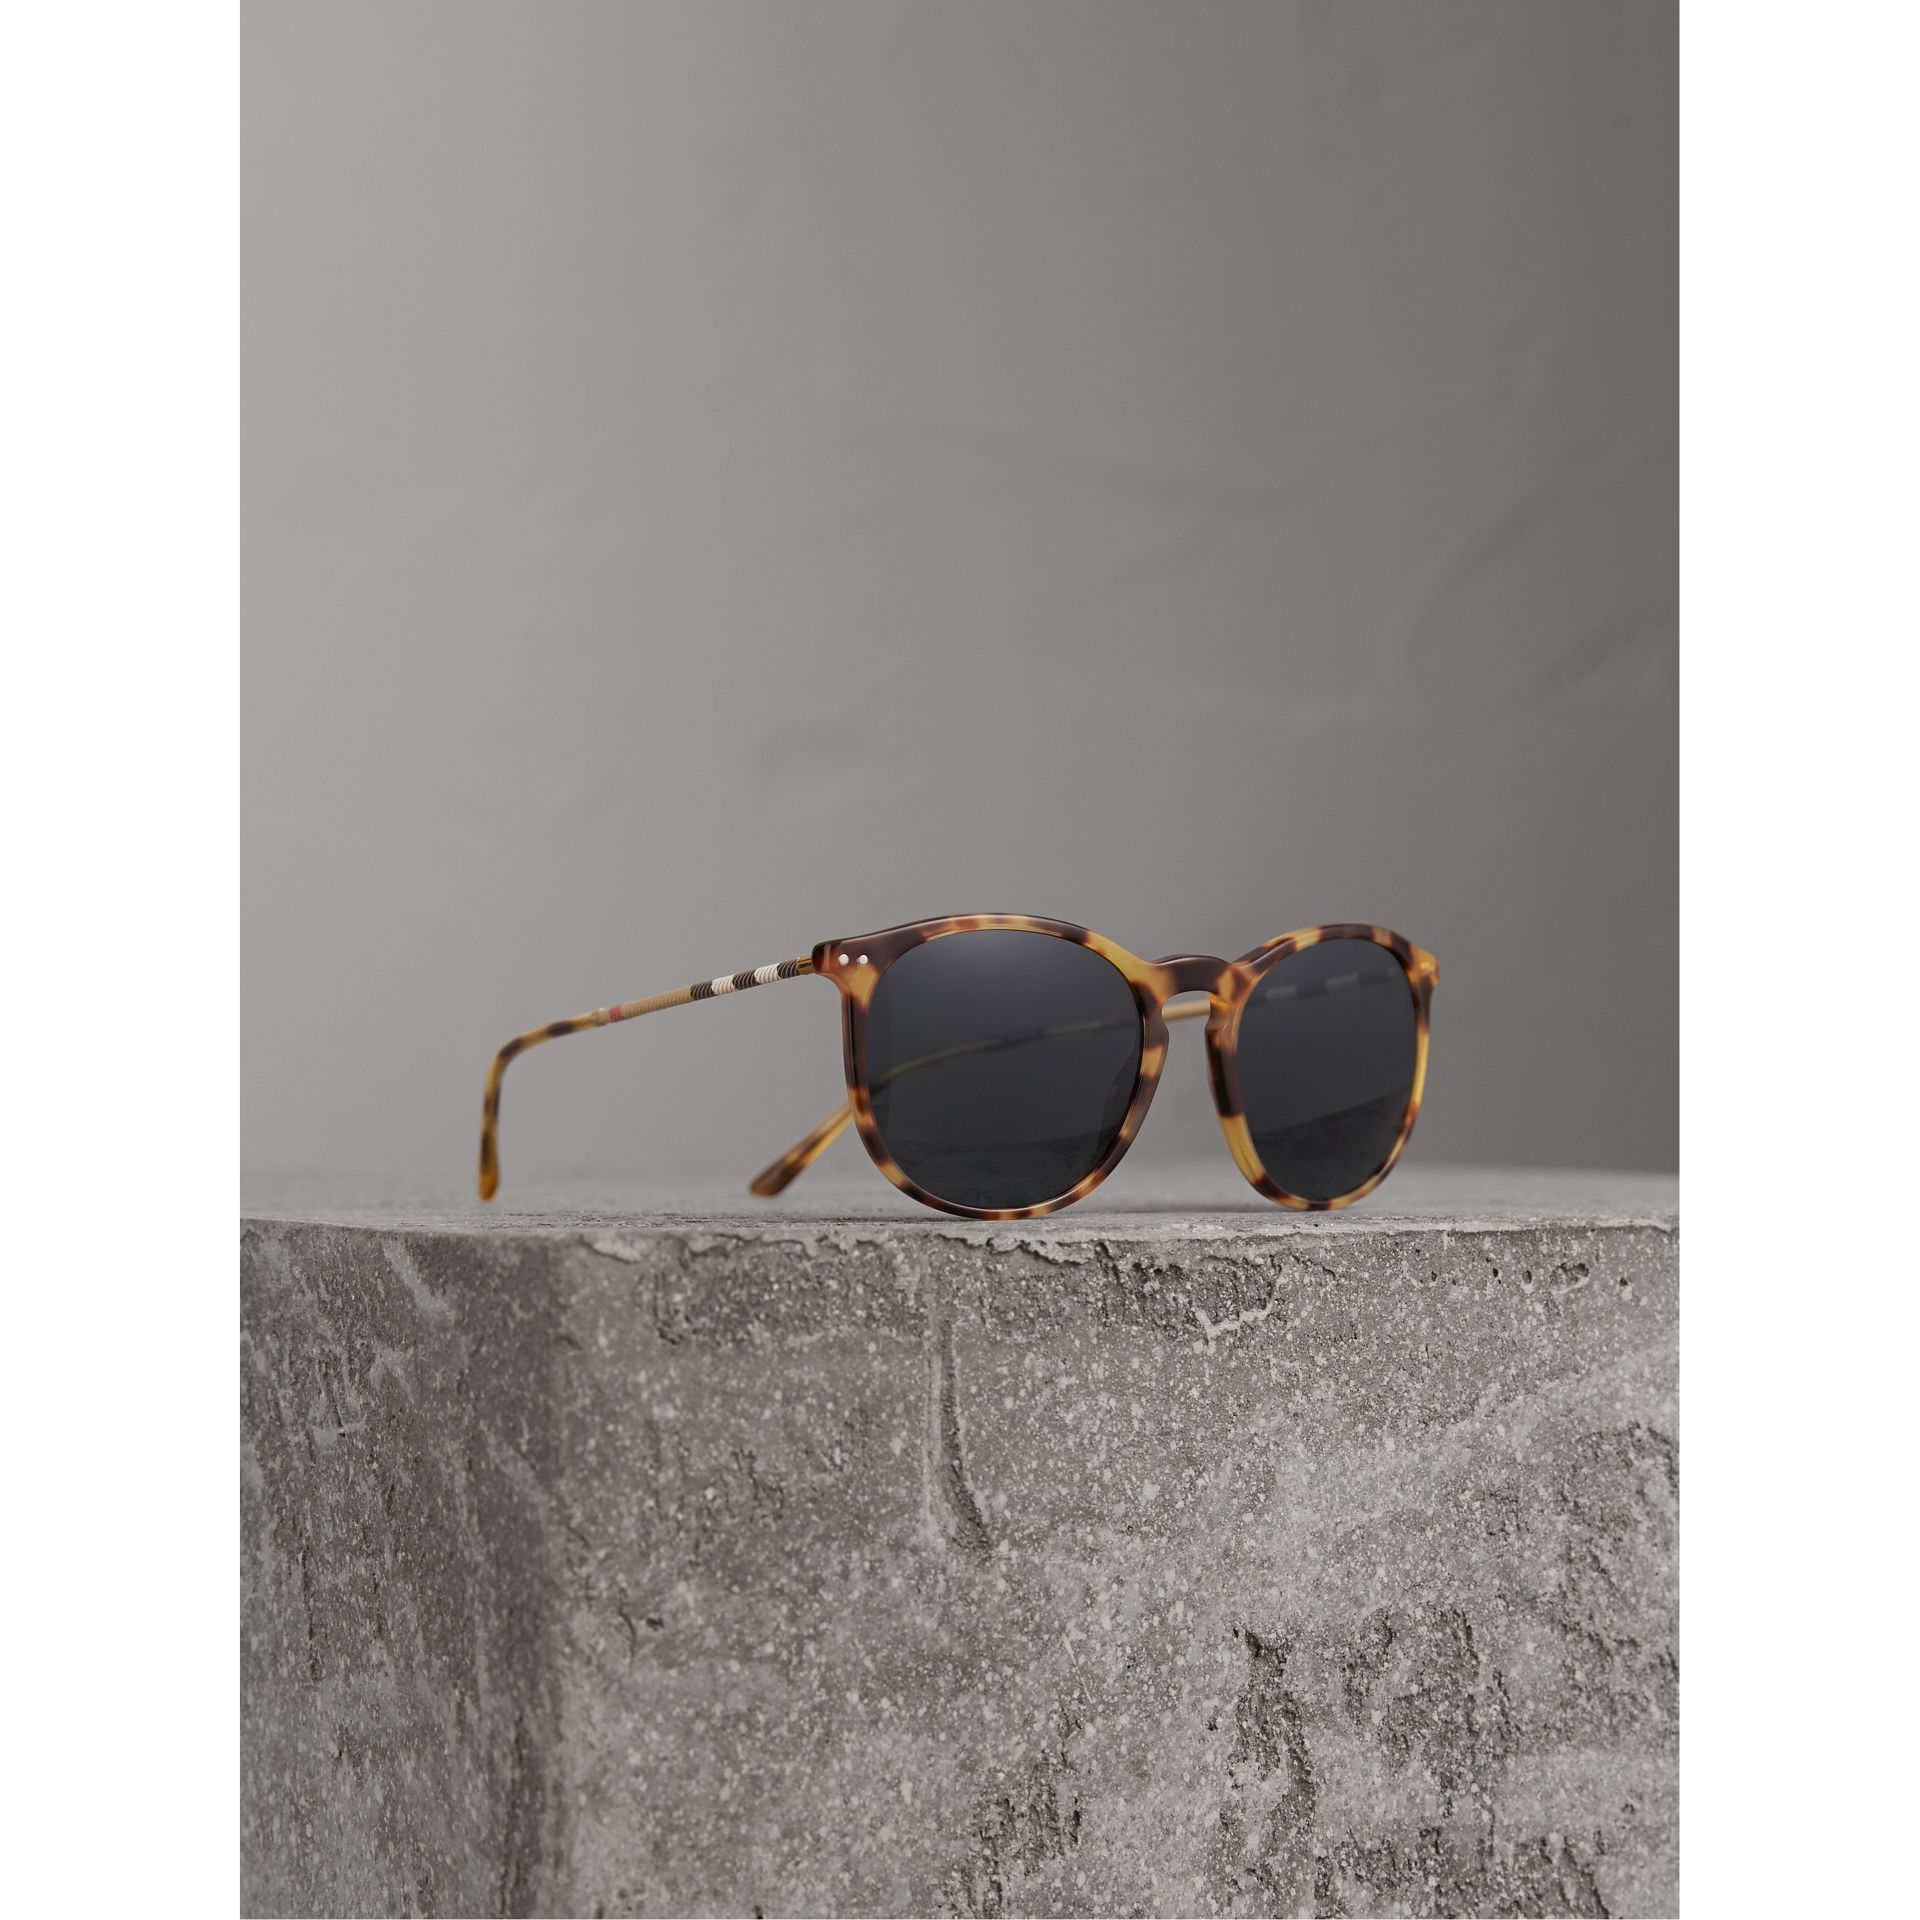 Burberry Dark Brown Check Detail Round Frame Sunglasses